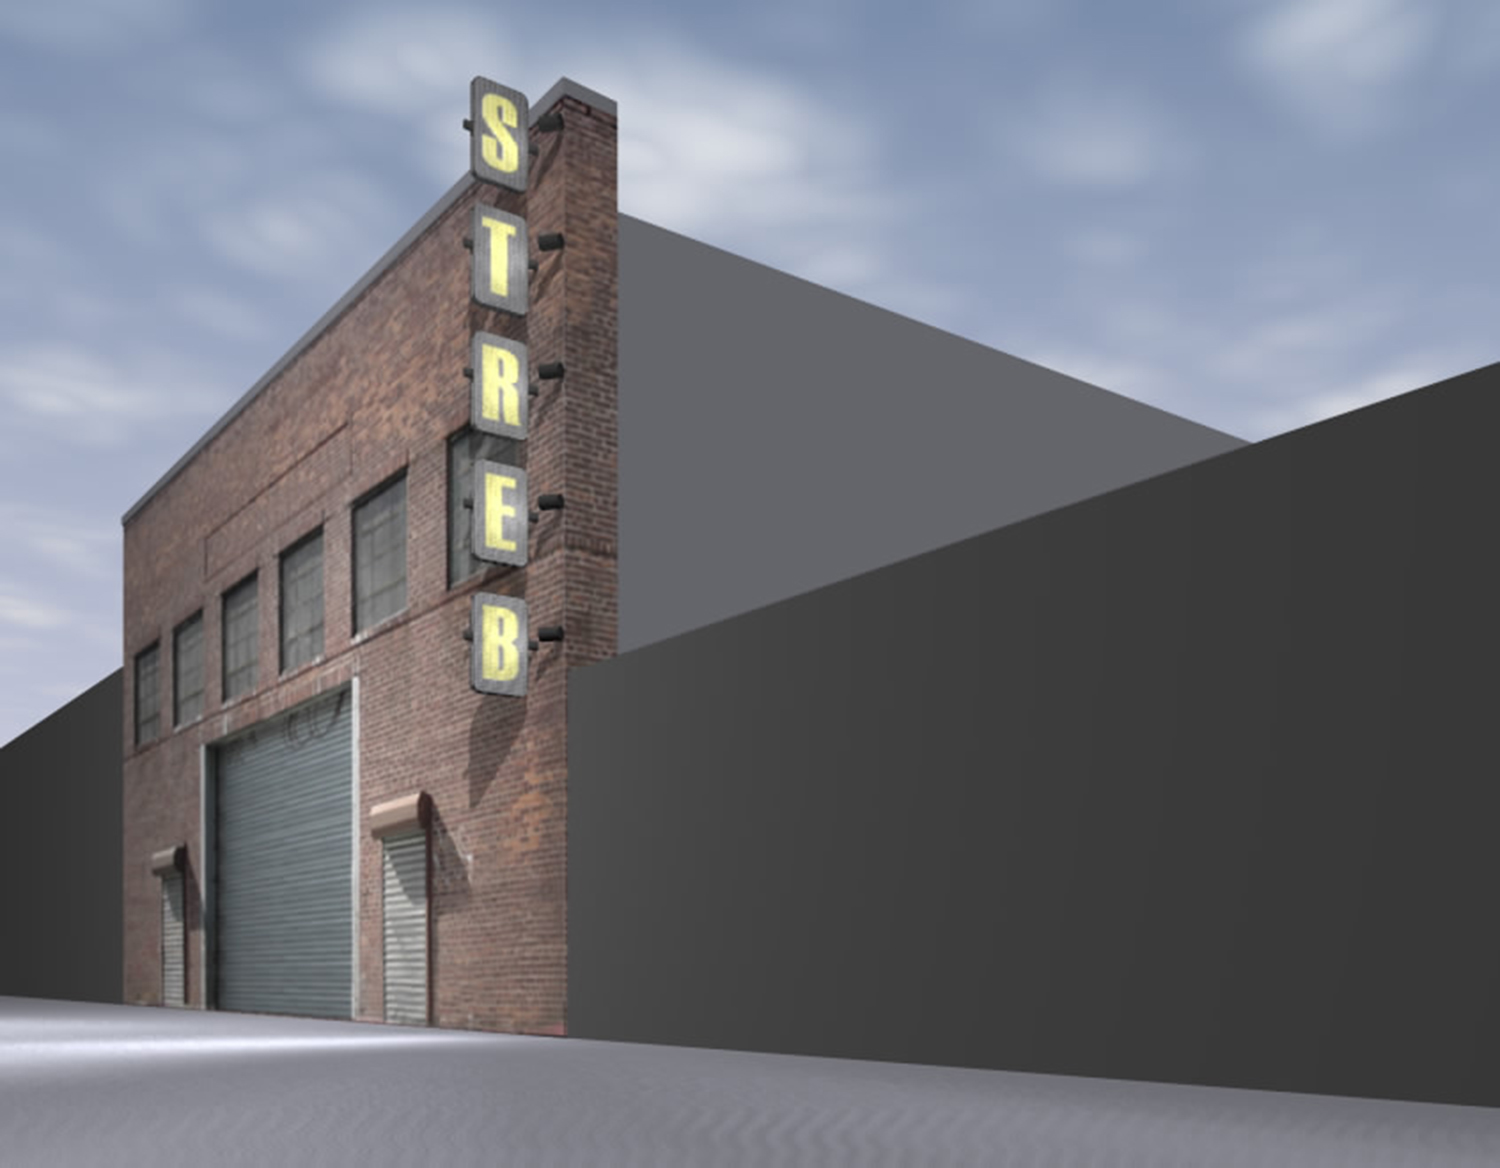 Rendering of exterior sign